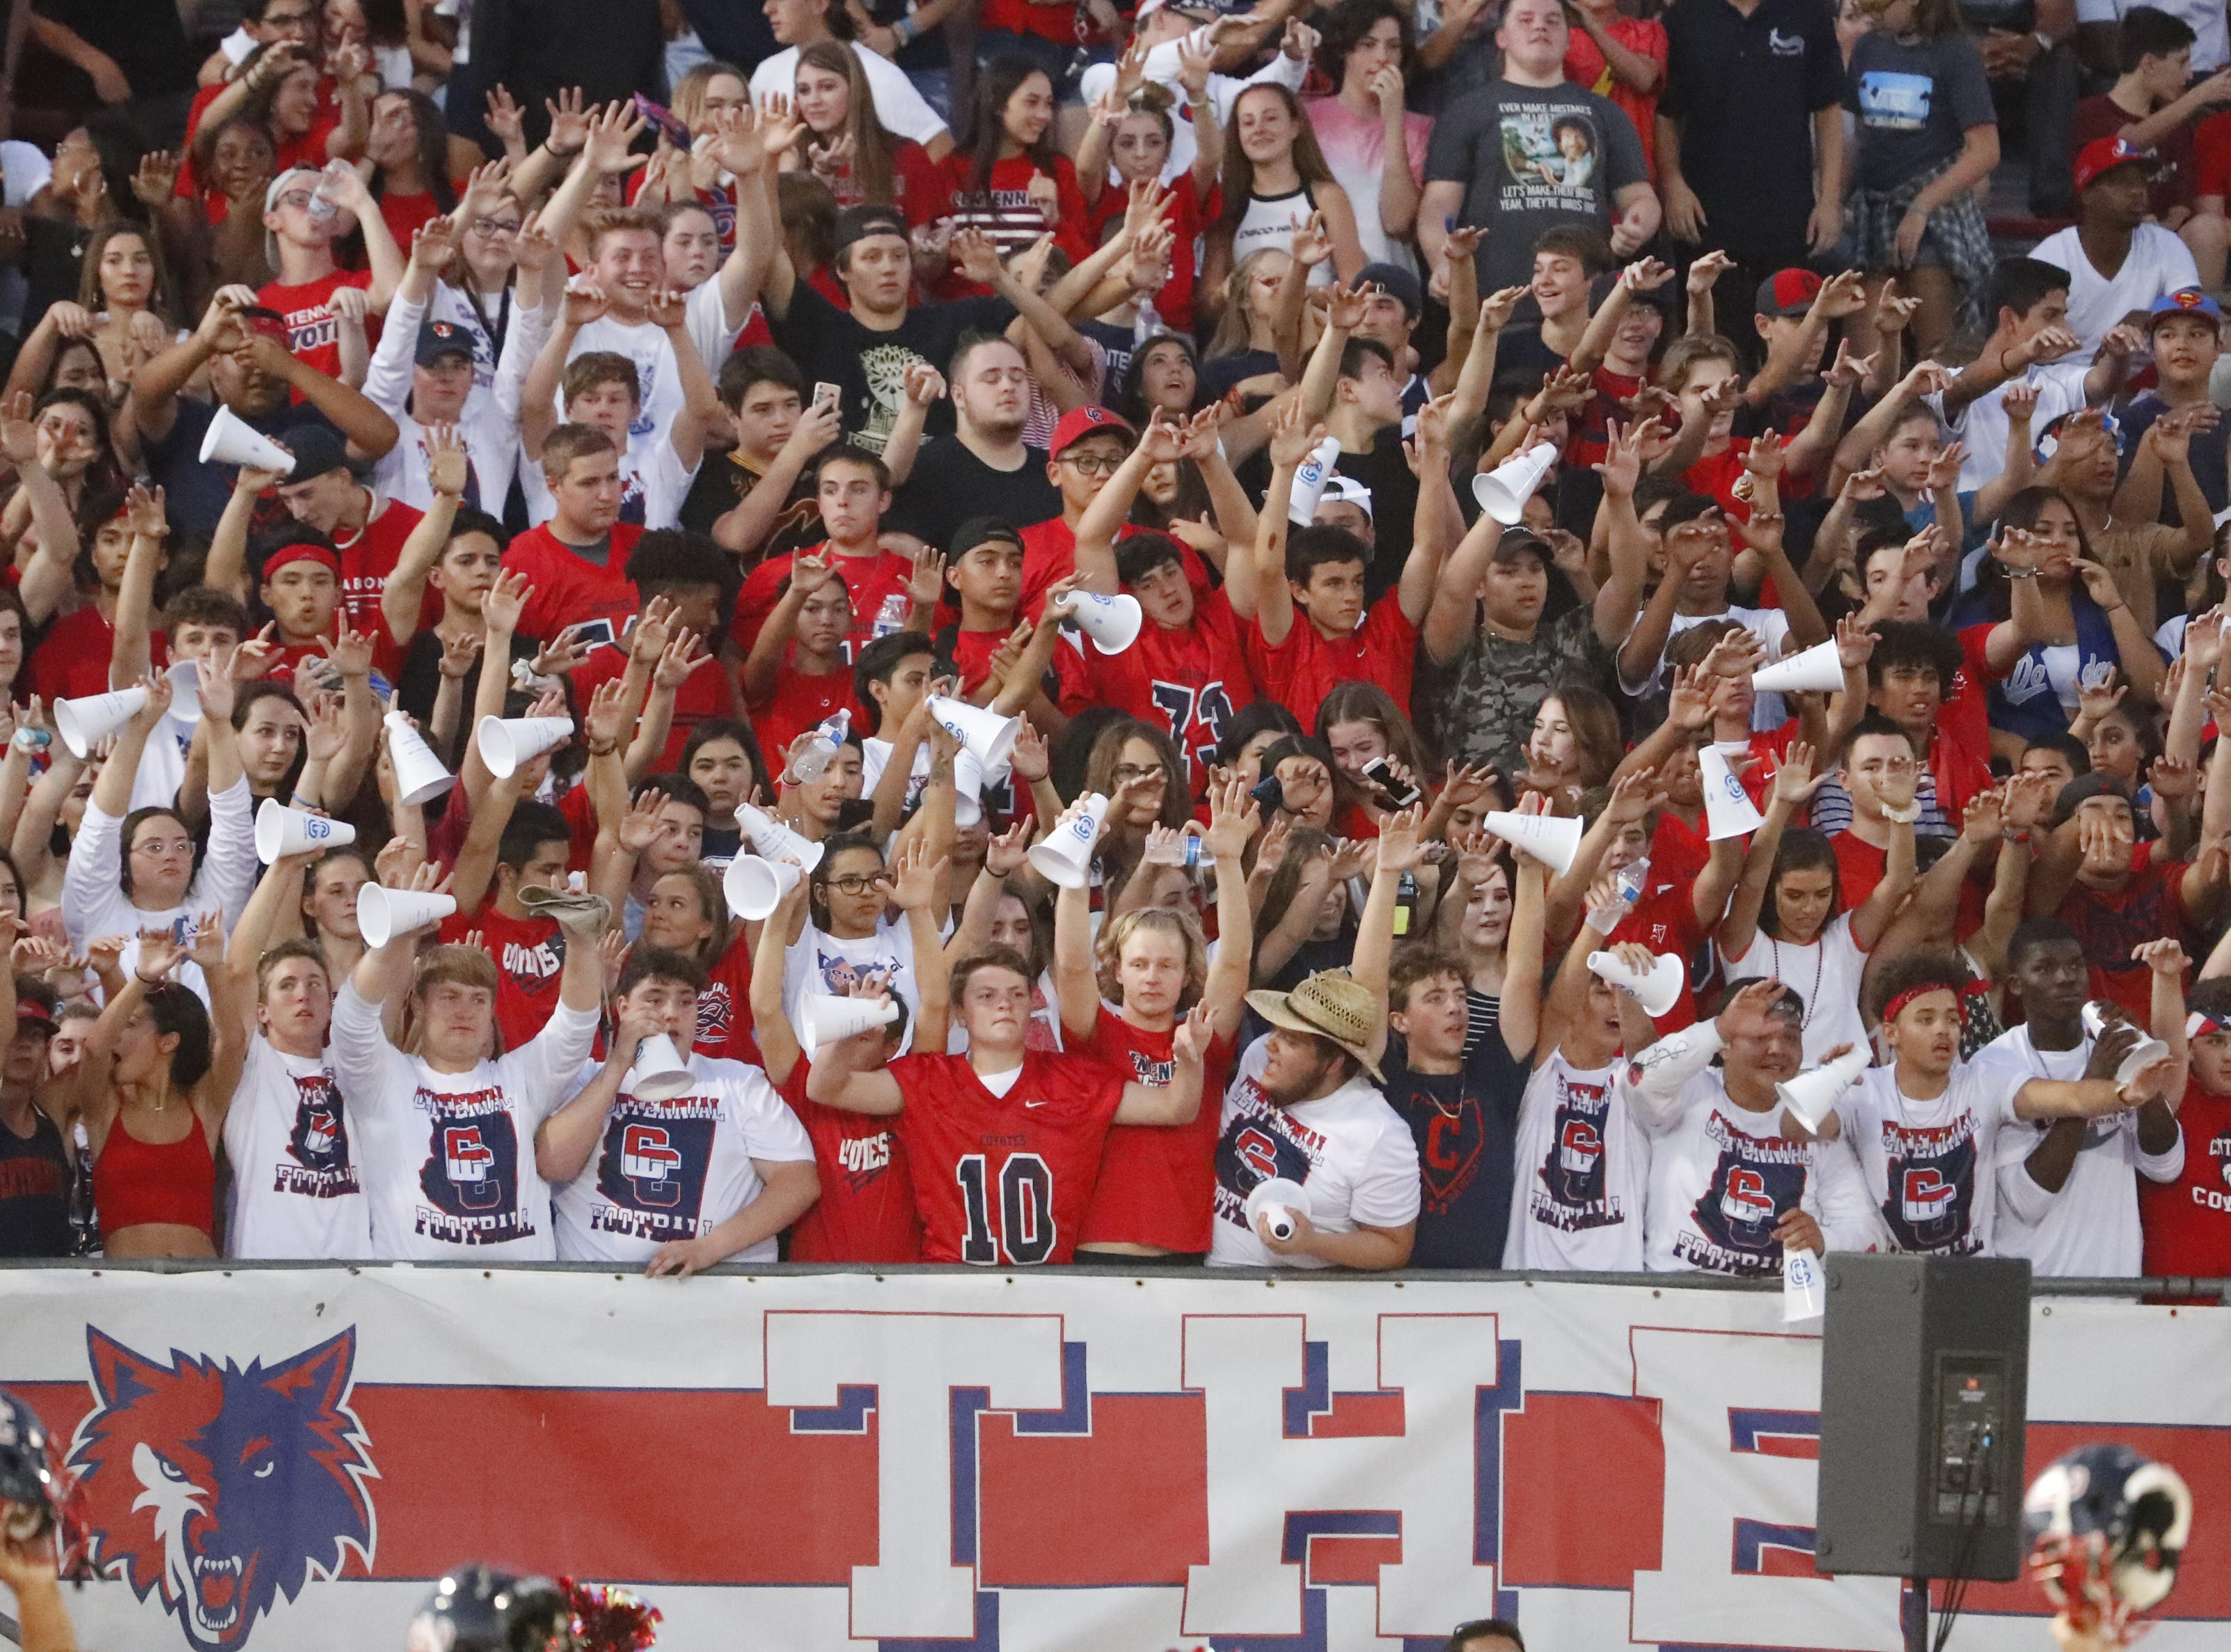 Centennial fans cheer on their team at kickoff against Bishop Gorman at Centennial High School in  Peoria, Ariz. on Aug. 31, 2018.